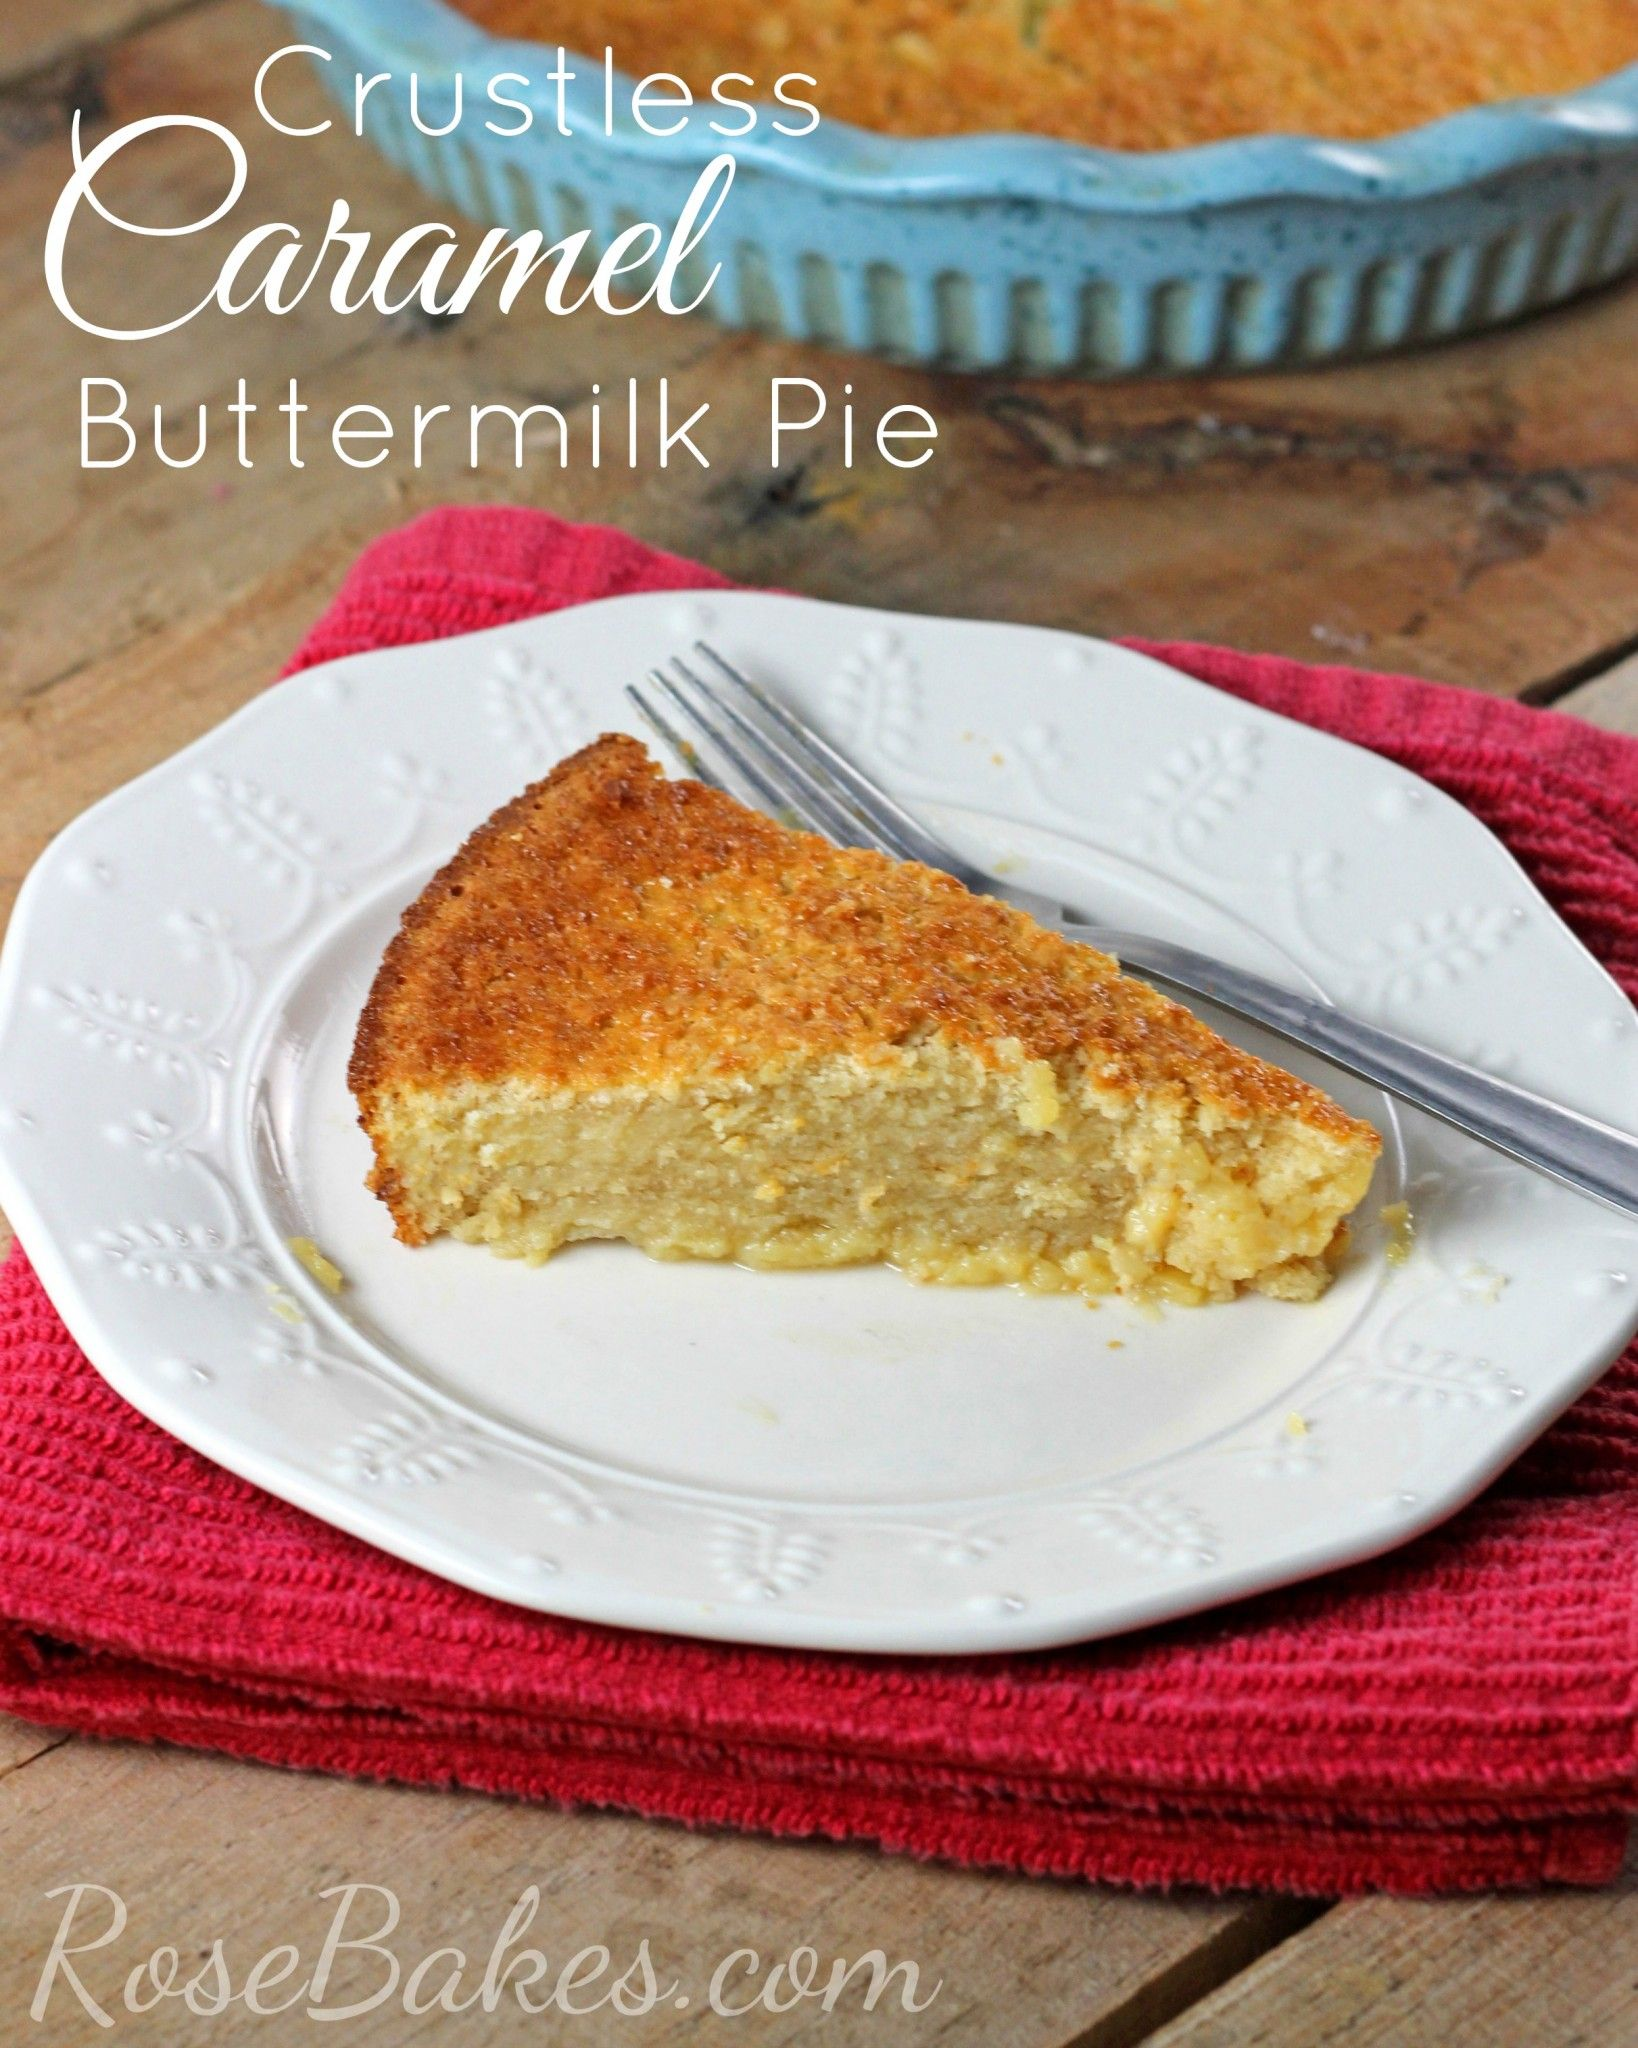 Crustless Caramel Buttermilk Pie Recipe Buttermilk Recipes Bisquick Recipes Buttermilk Pie